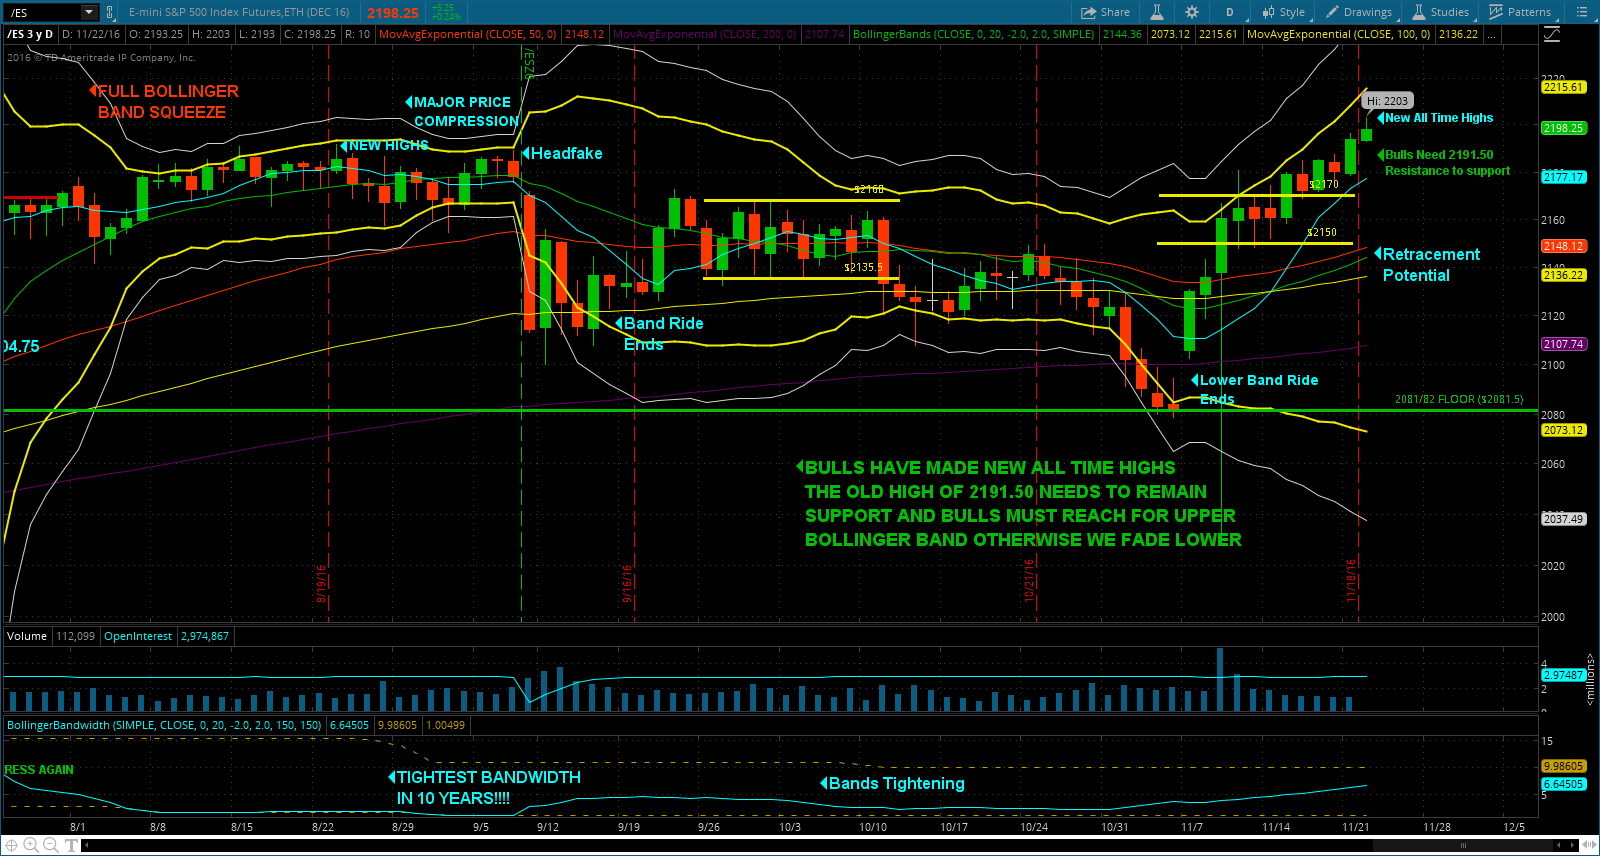 Bulls did what was required on Monday by holding the RTH opening up as support and buying the morning dip.  What followed was a grind higher that accelerated during last night's Globex.  There are new all-time highs on Globex and in the cash.  The Bulls will want to hold the old all-time high of 2191.50 as support and build upon the push to 2203.  Bear will need to get back below the old high and close below today's regular open.  Beyond that, absent news to fuel a down move, the bulls can continue to grind the tape higher.